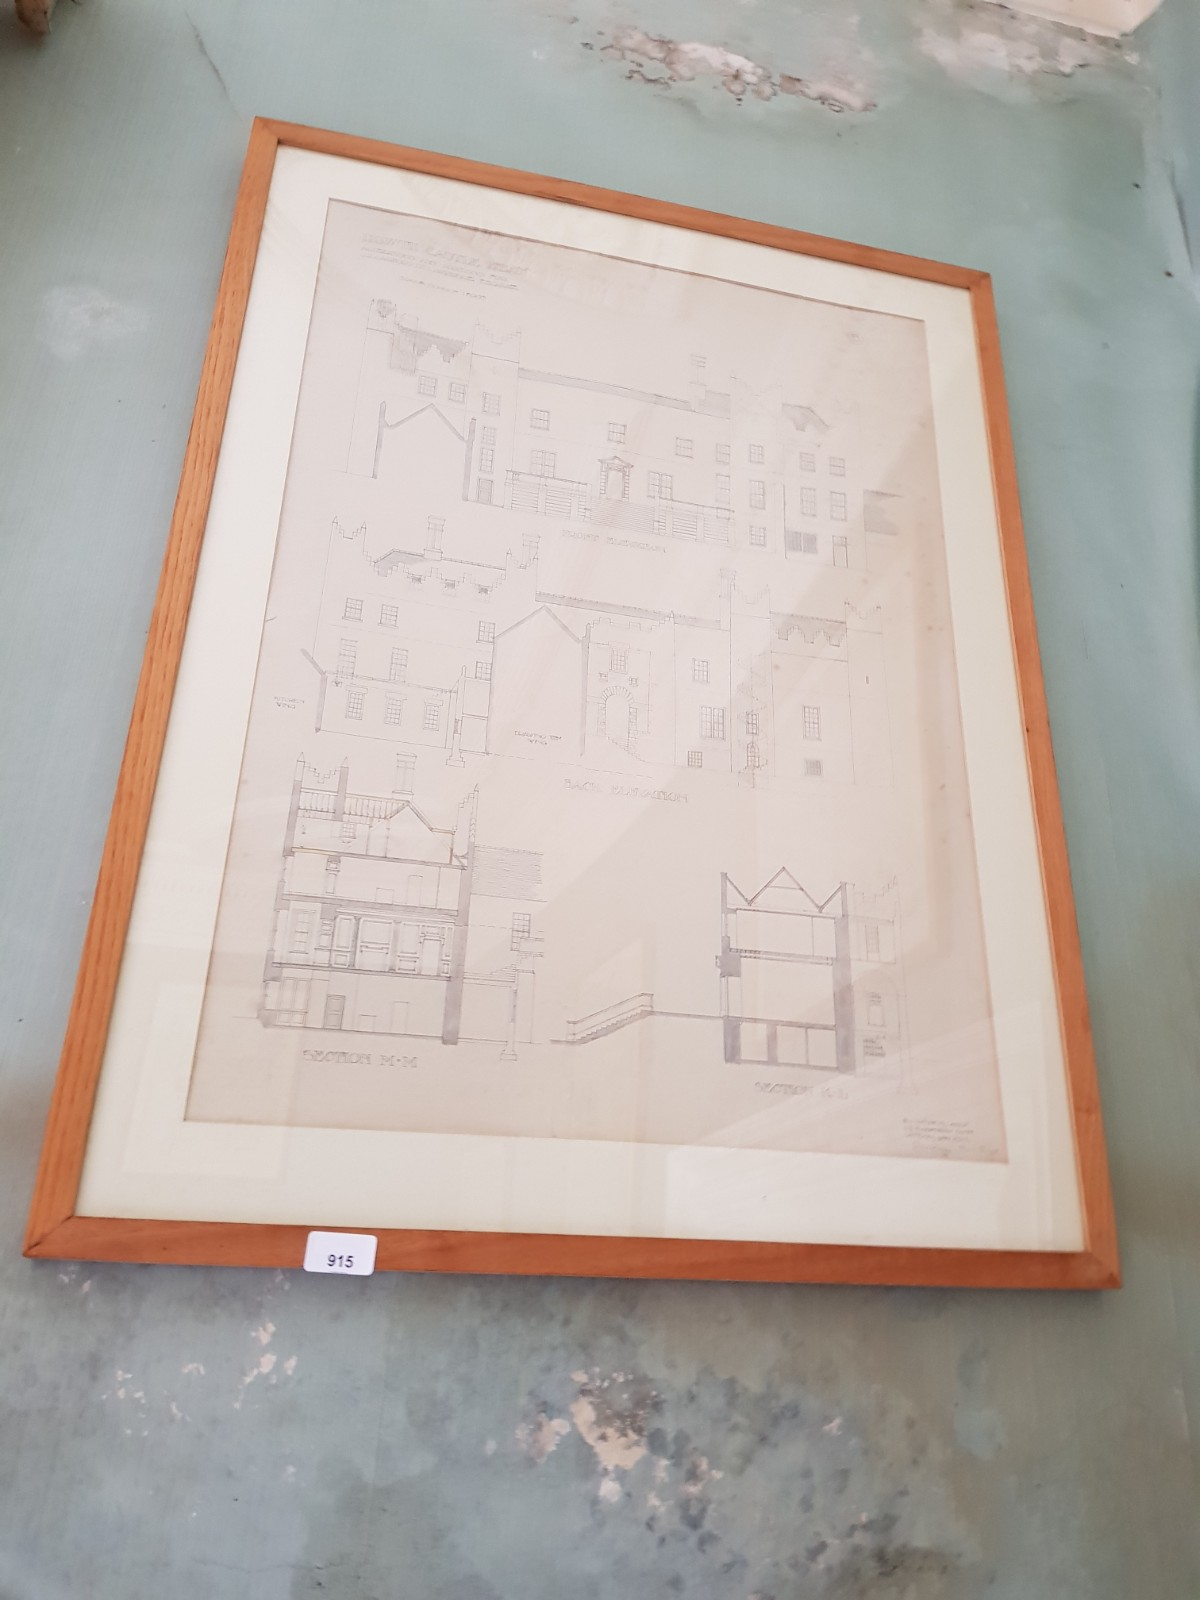 Sir Edward L. Lutyens 1869 - 1944 Howth Castle Plans: A Series of 10 Prototype Architect Drawings - Image 5 of 6